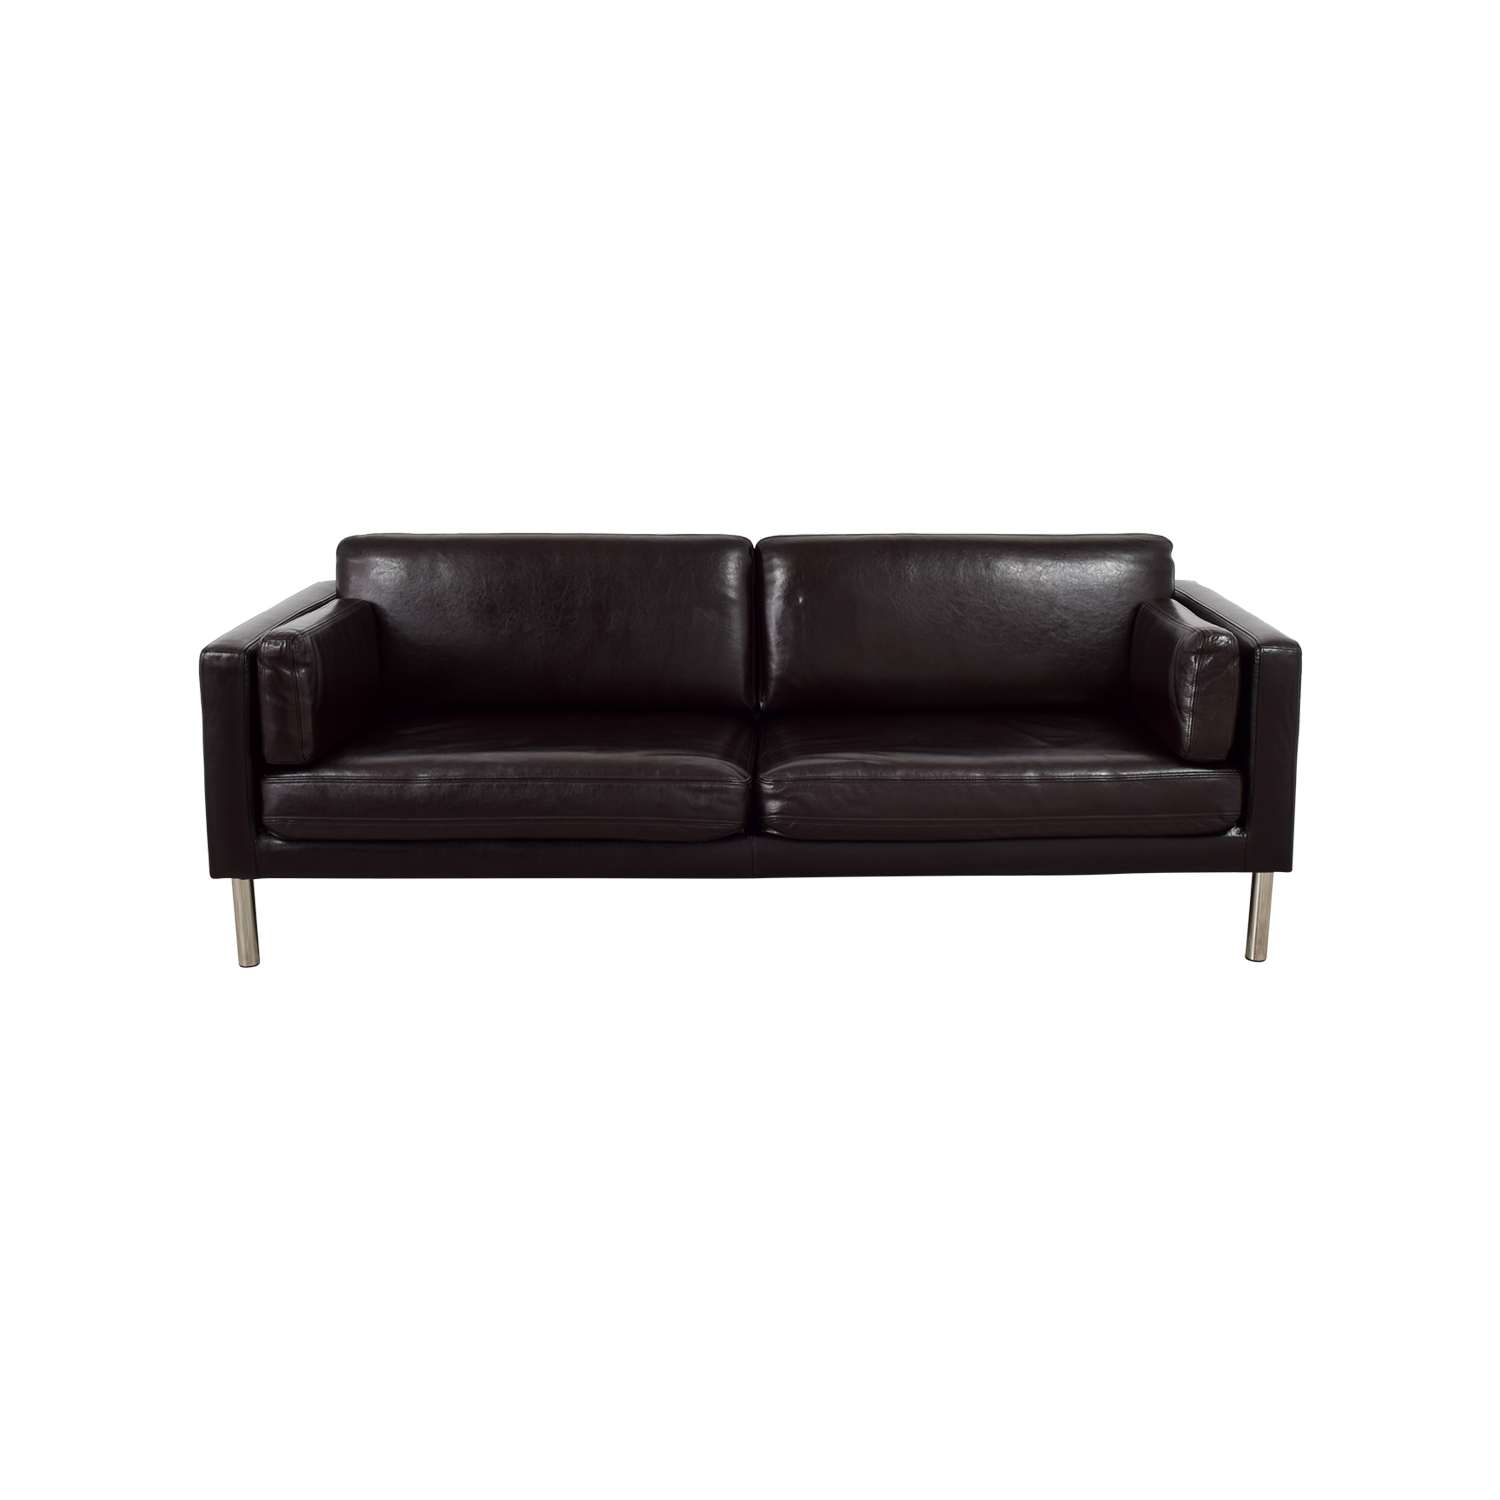 Ikea Sofa Säter 41 Off Ikea Ieka Sater Brown Leather Couch Sofas